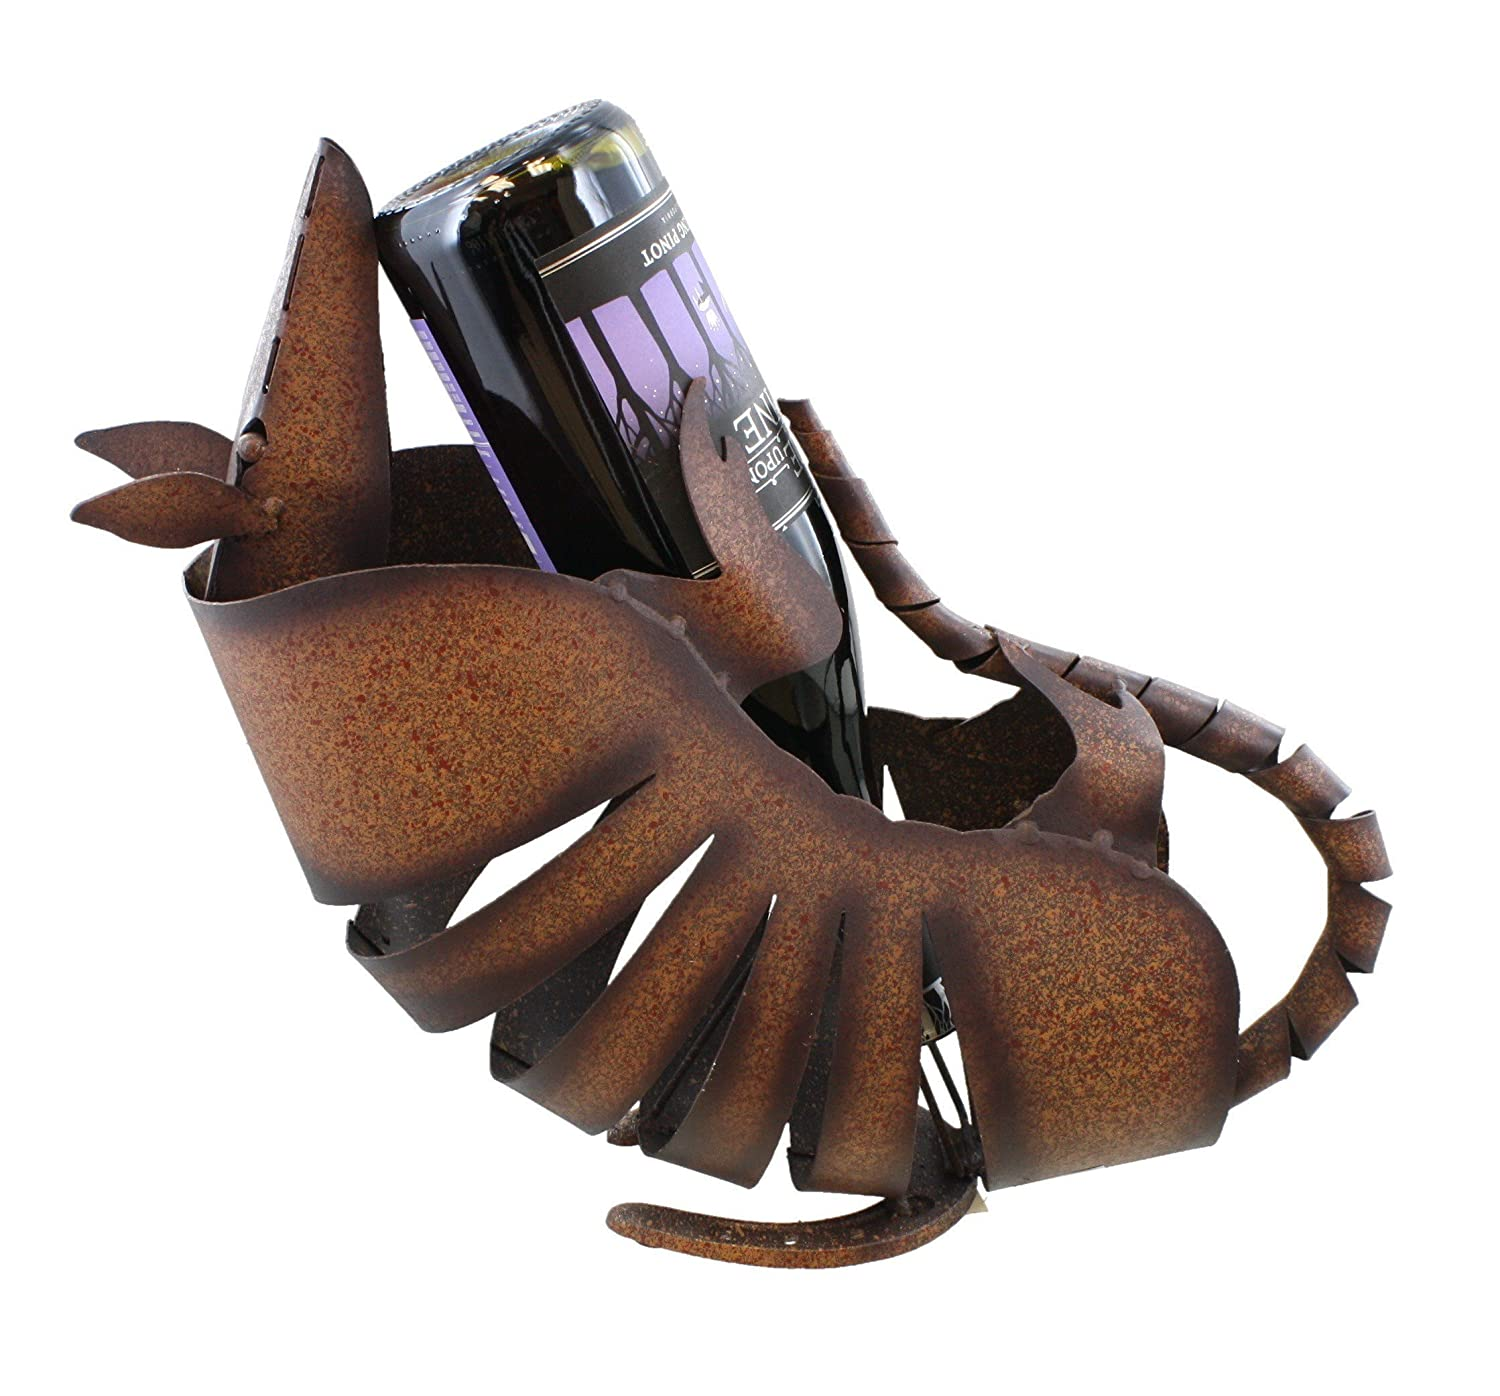 Large Springy Head - Metal Armadillo Wine Bottle Holder - Welded Western Art Sculpture Figure